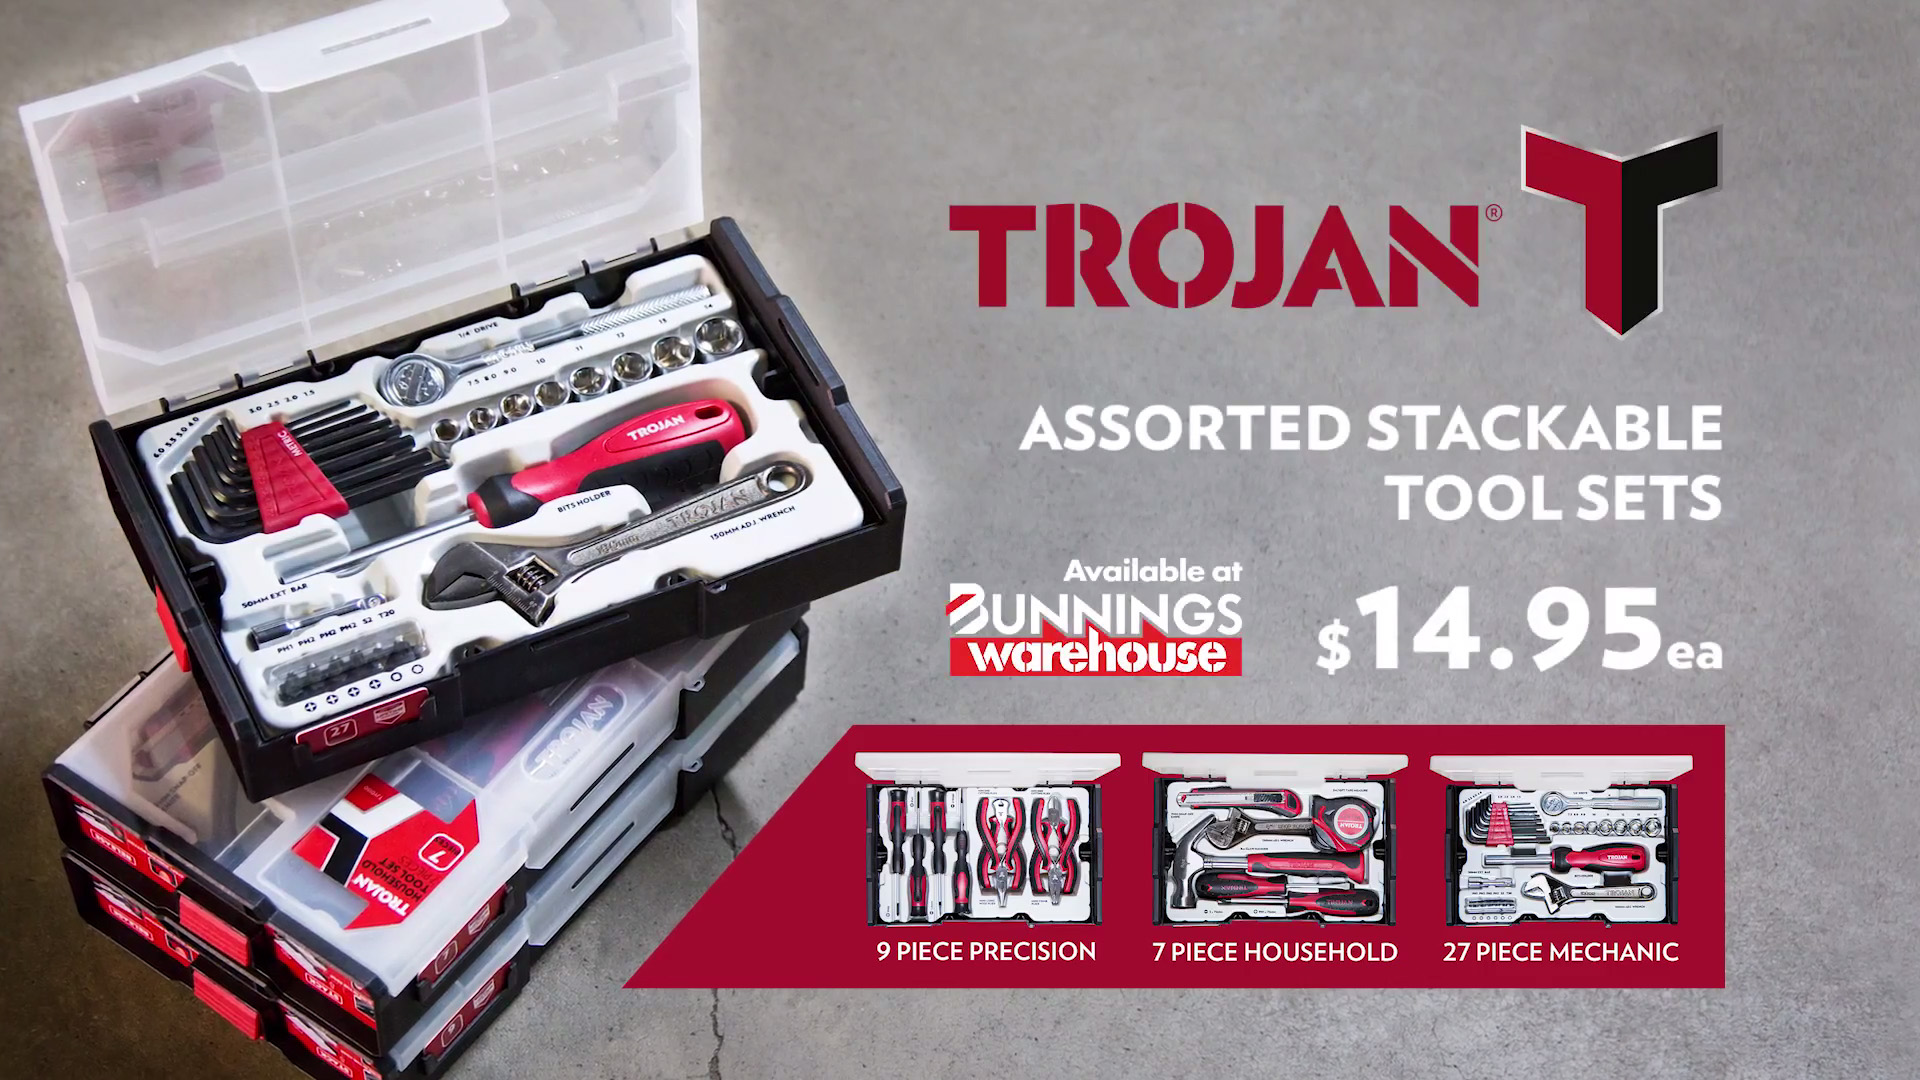 ASSORTED STACKABLE TOOL SETS